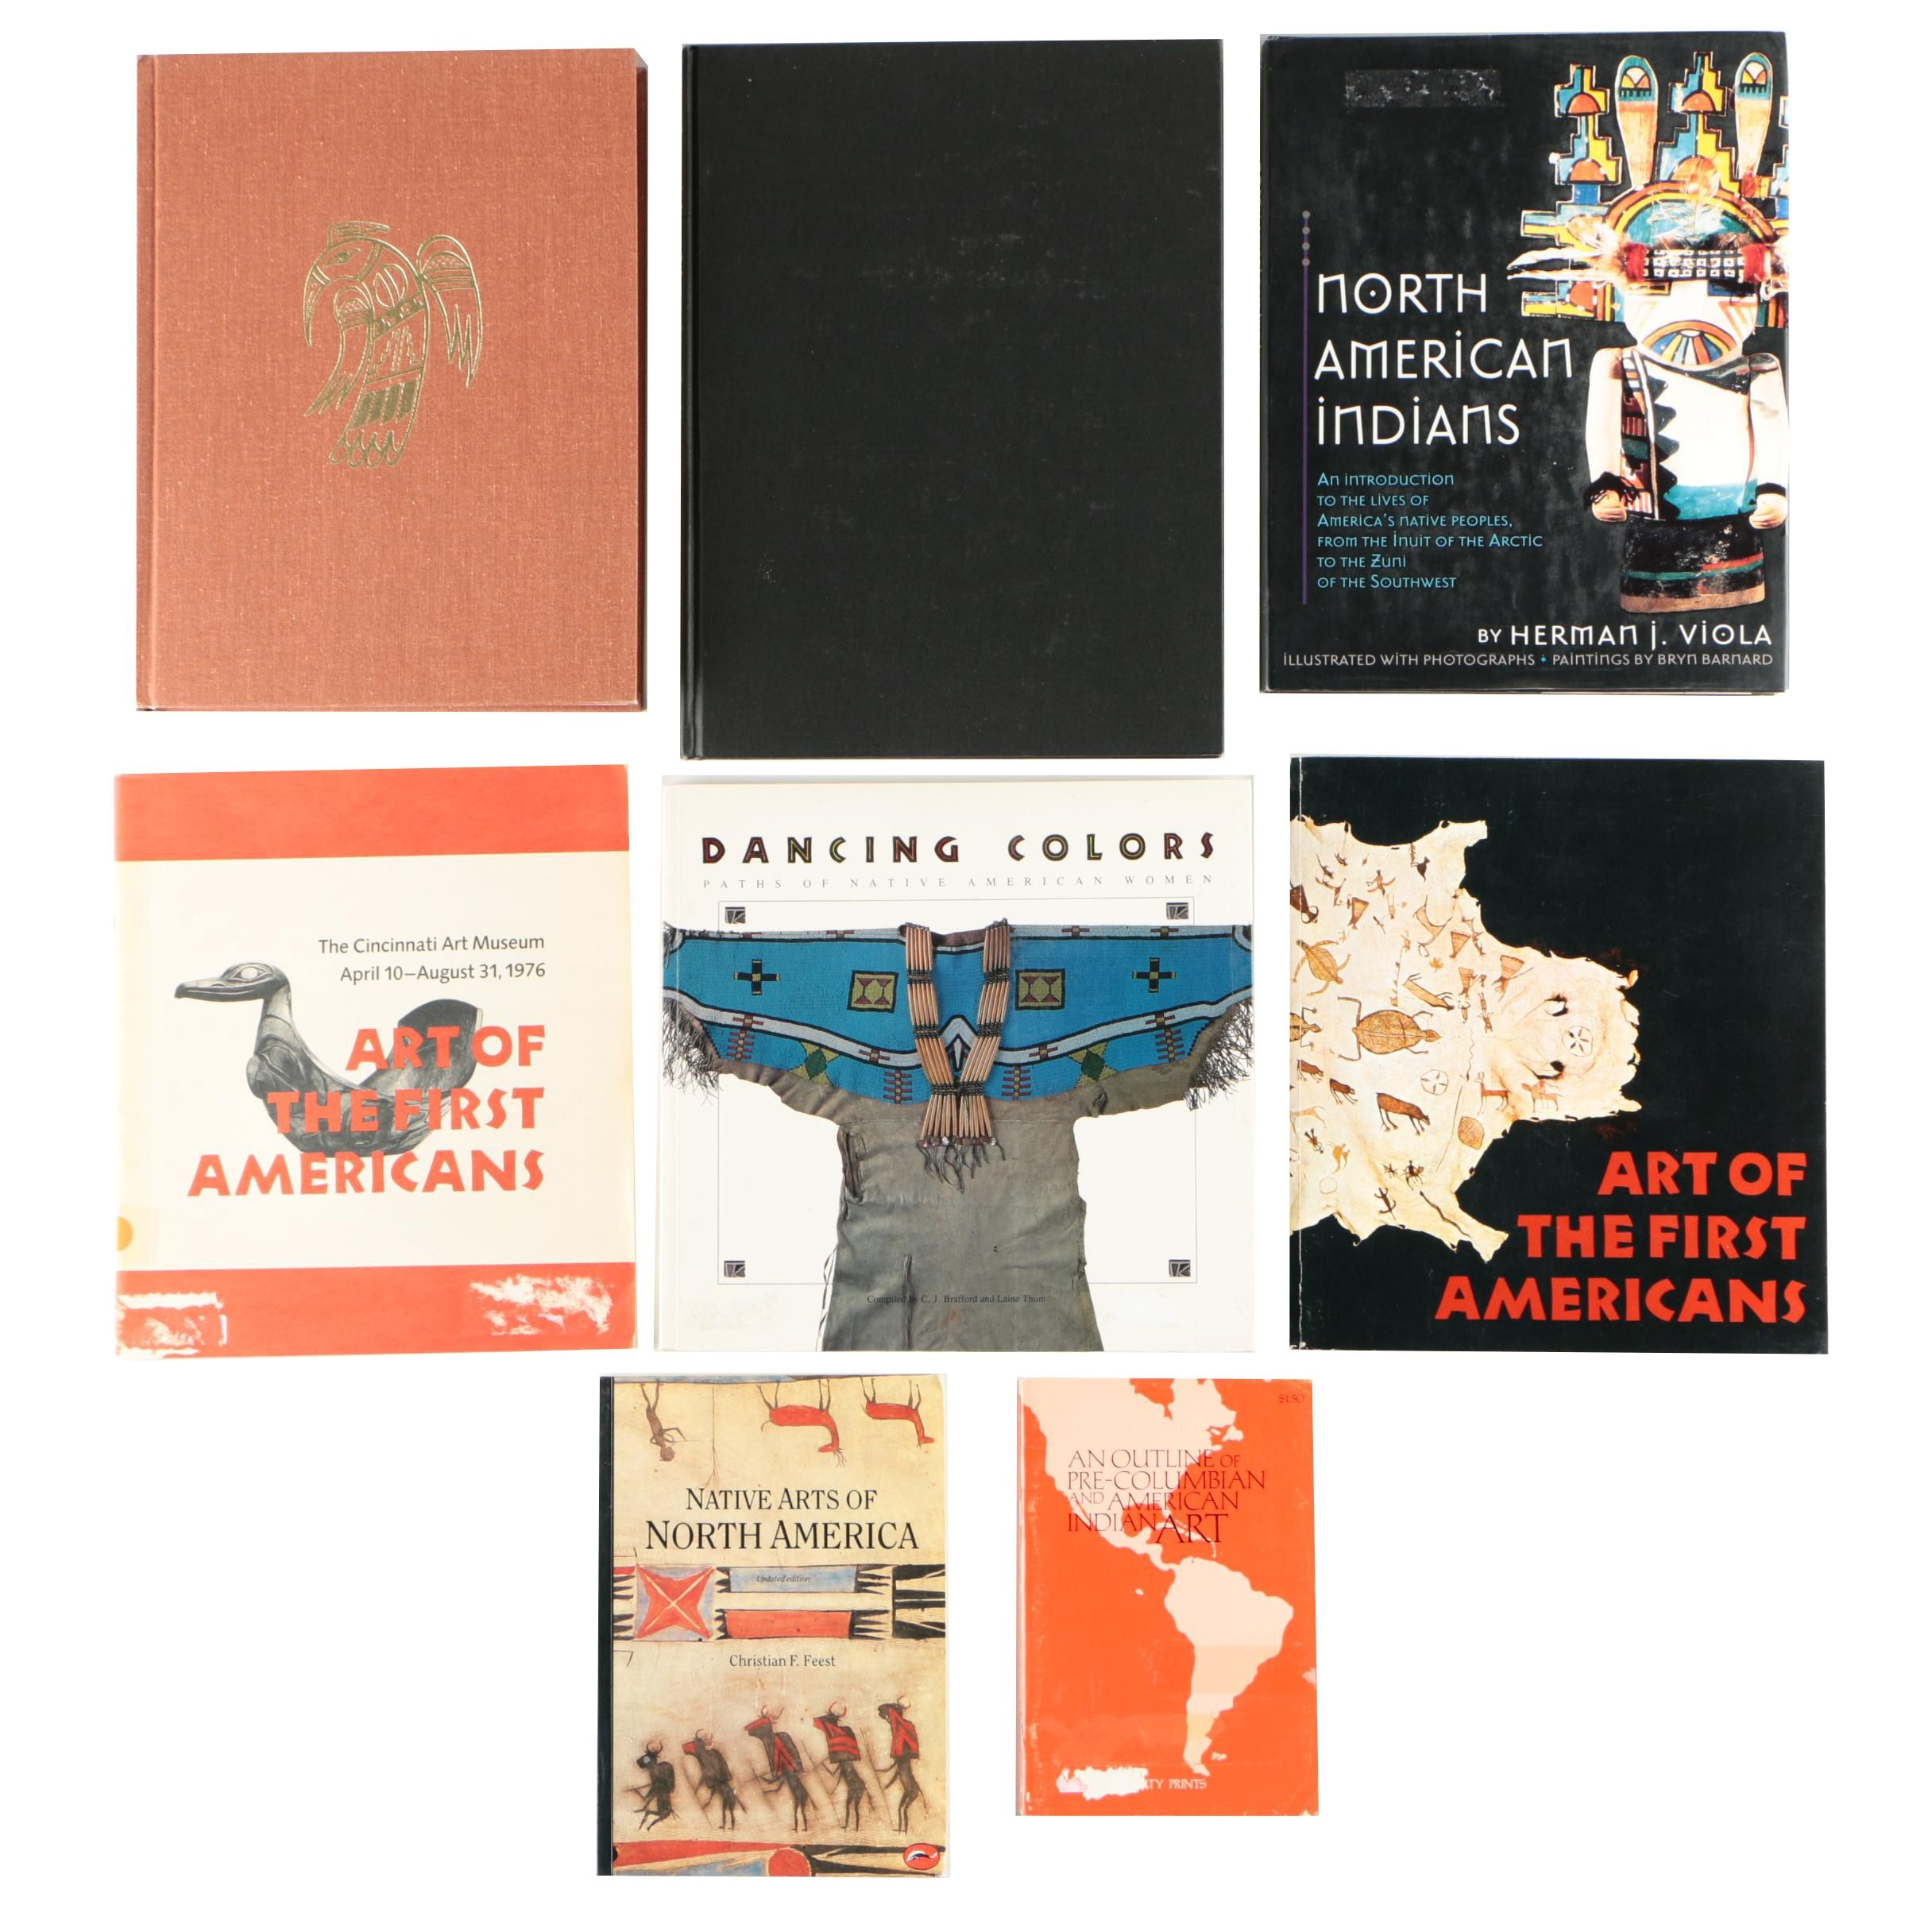 Books on Native American Arts and History